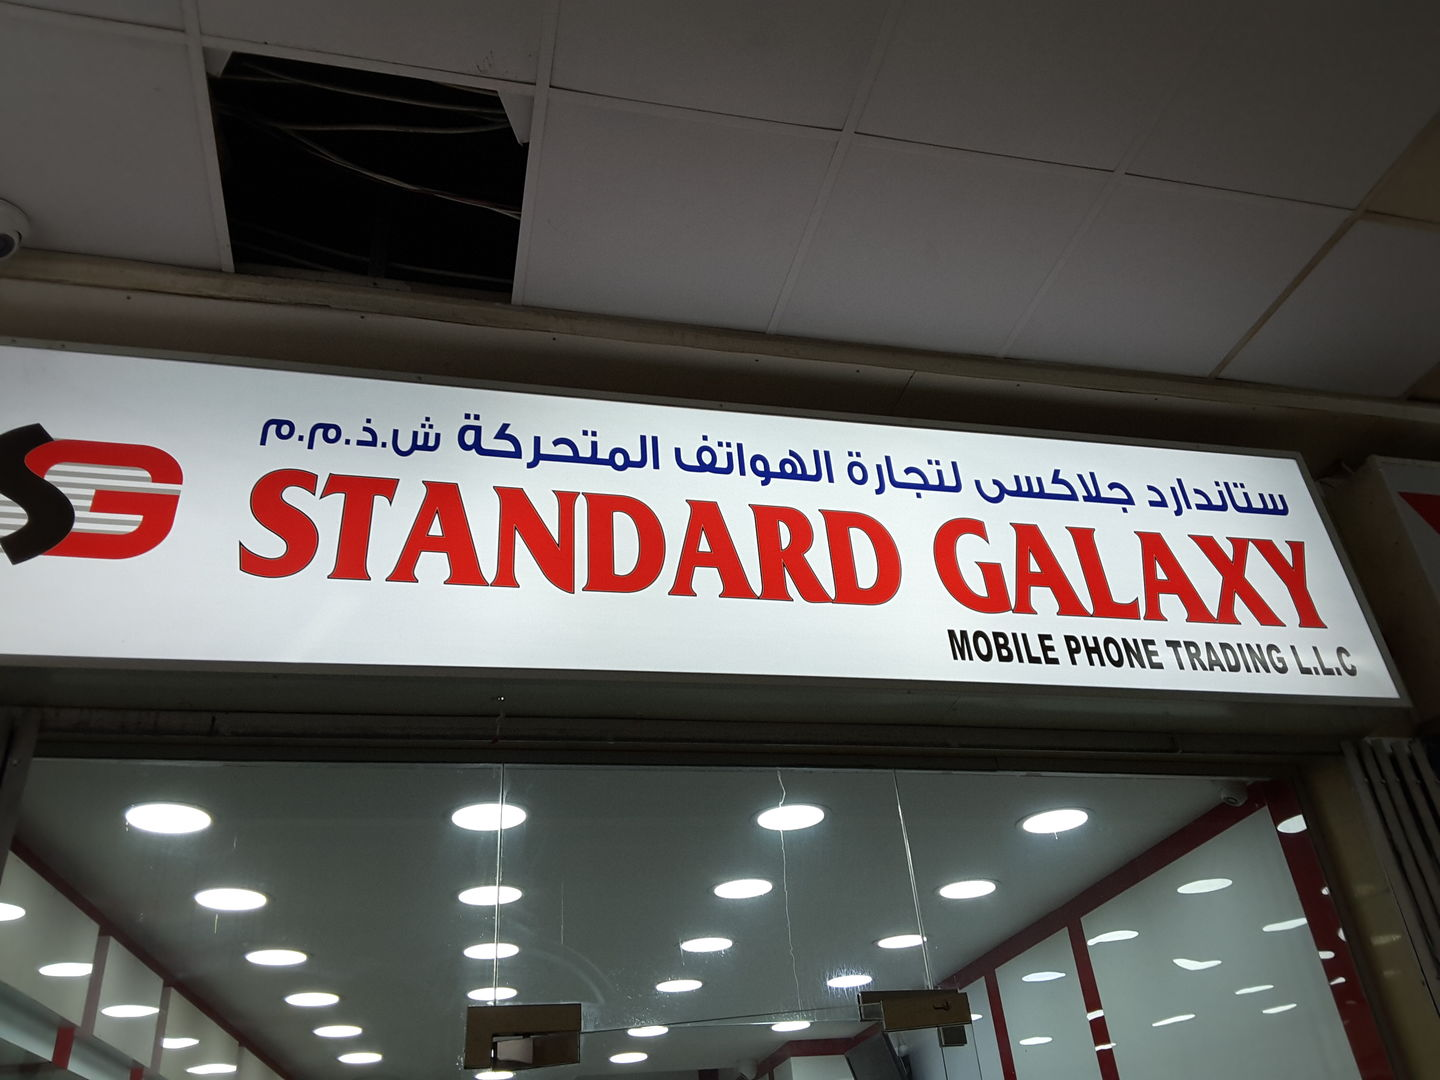 HiDubai-business-standard-galaxy-mobile-phone-trading-b2b-services-distributors-wholesalers-ayal-nasir-dubai-2